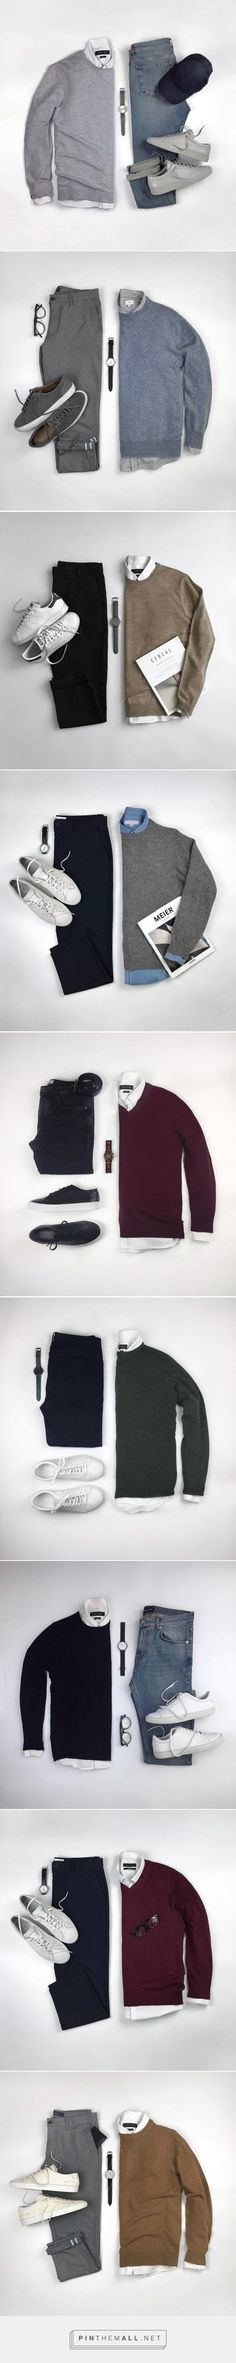 14 Stunning Outfit Grids To Help You Look Amazing – LIFESTYLE BY PS